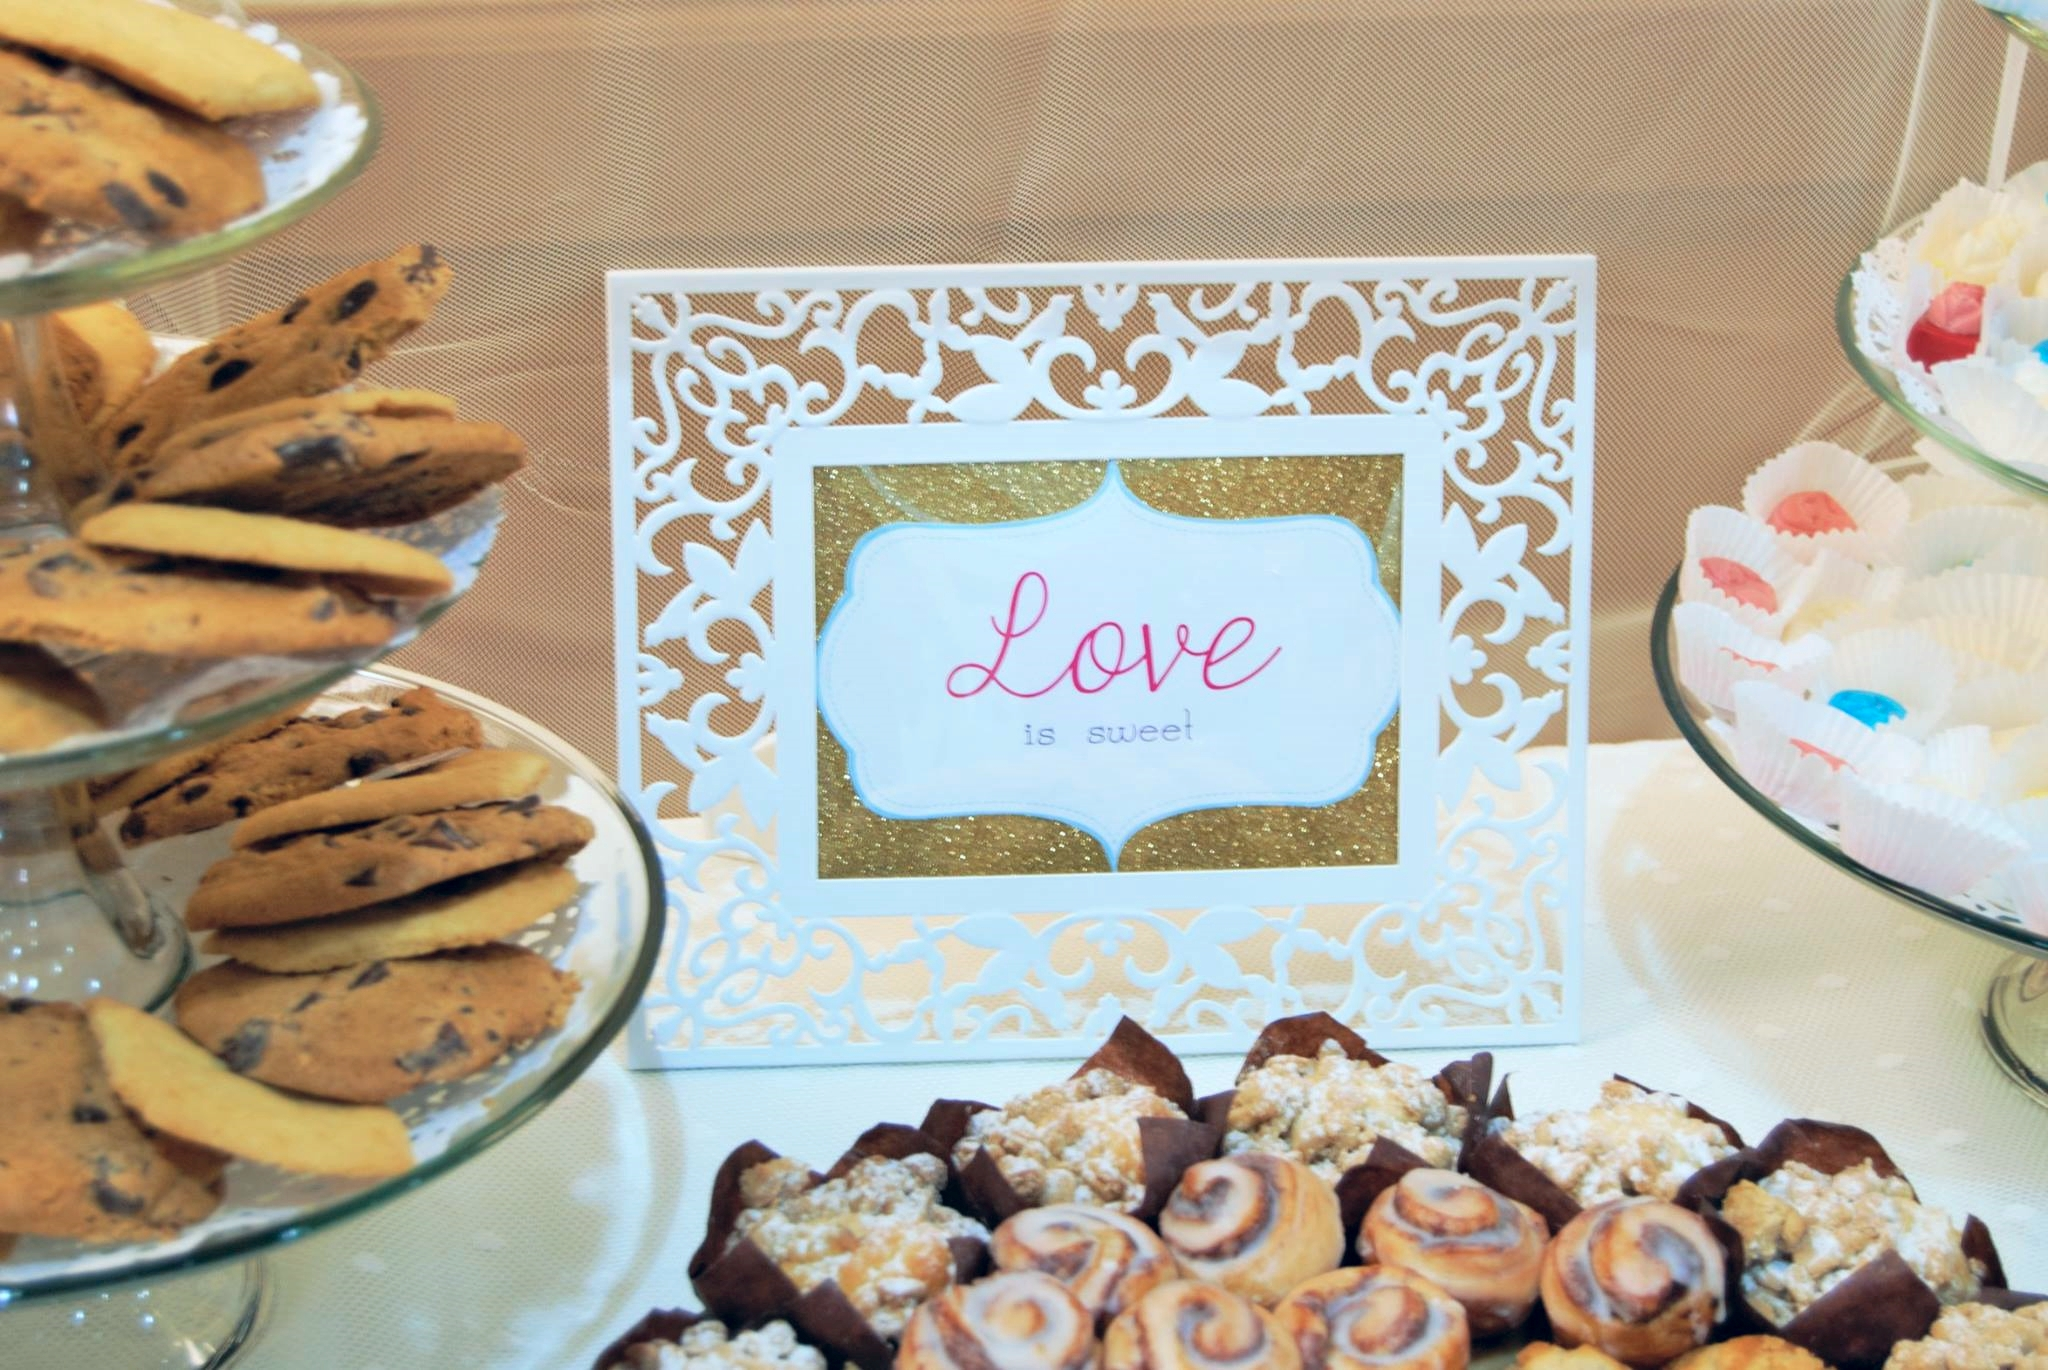 Adding framed quotes treats guests to special details that make the event look even more fabulous.